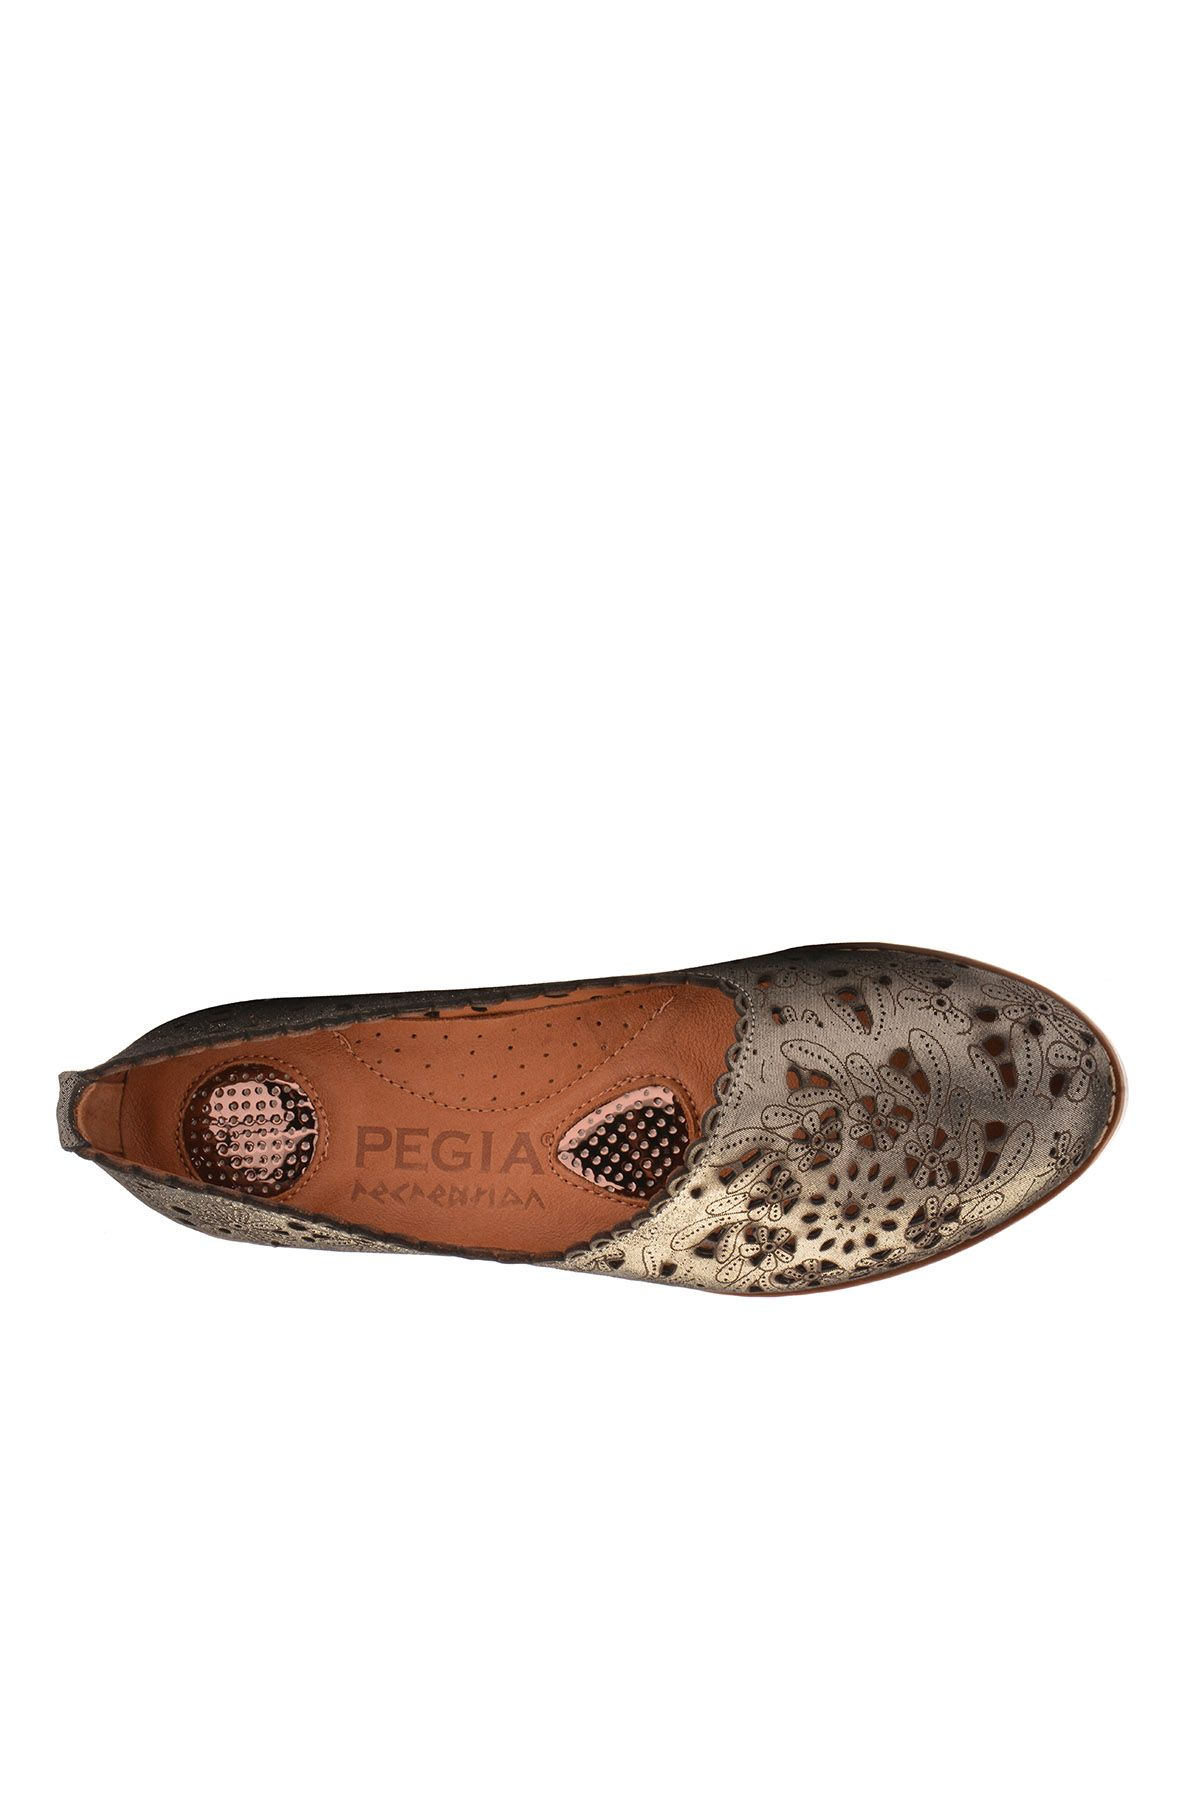 Pegia Women Shoes From Genuine Leather Black